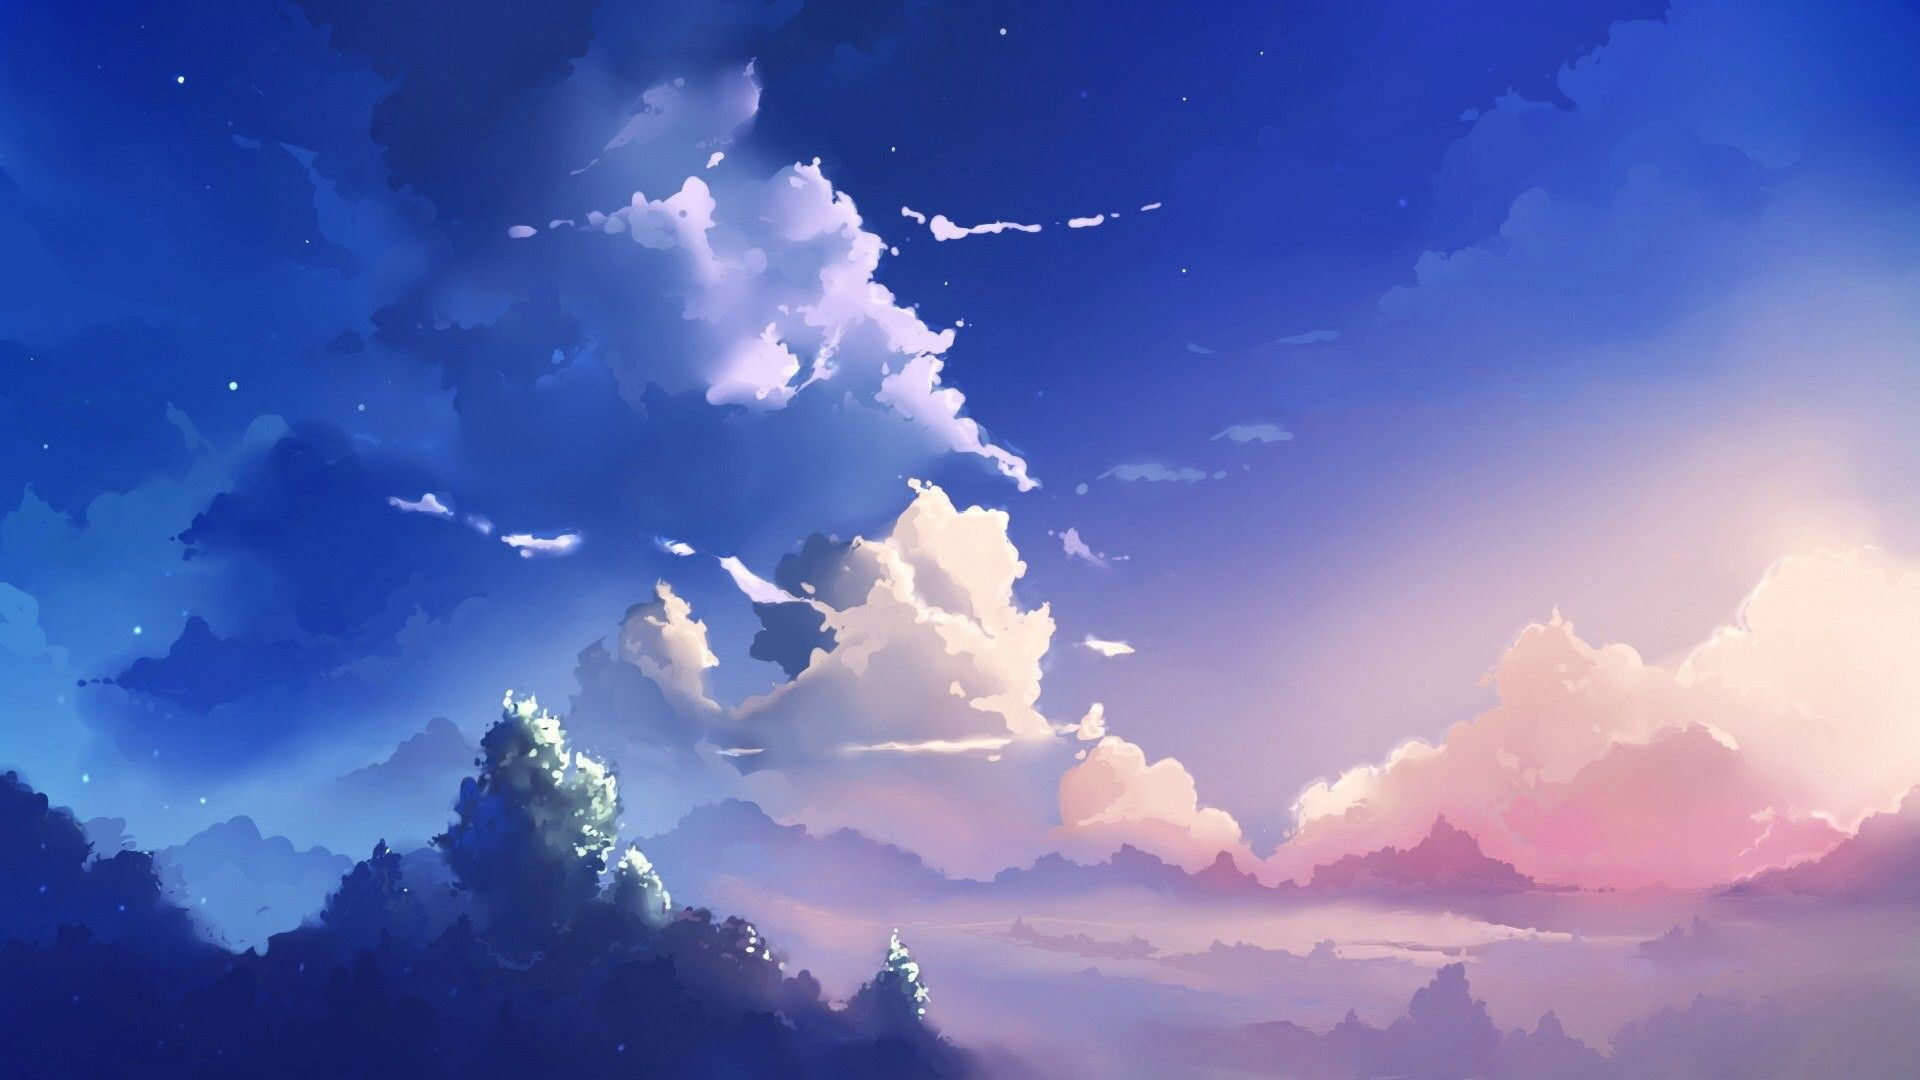 Download 500+ Wallpaper Aesthetic Anime HD